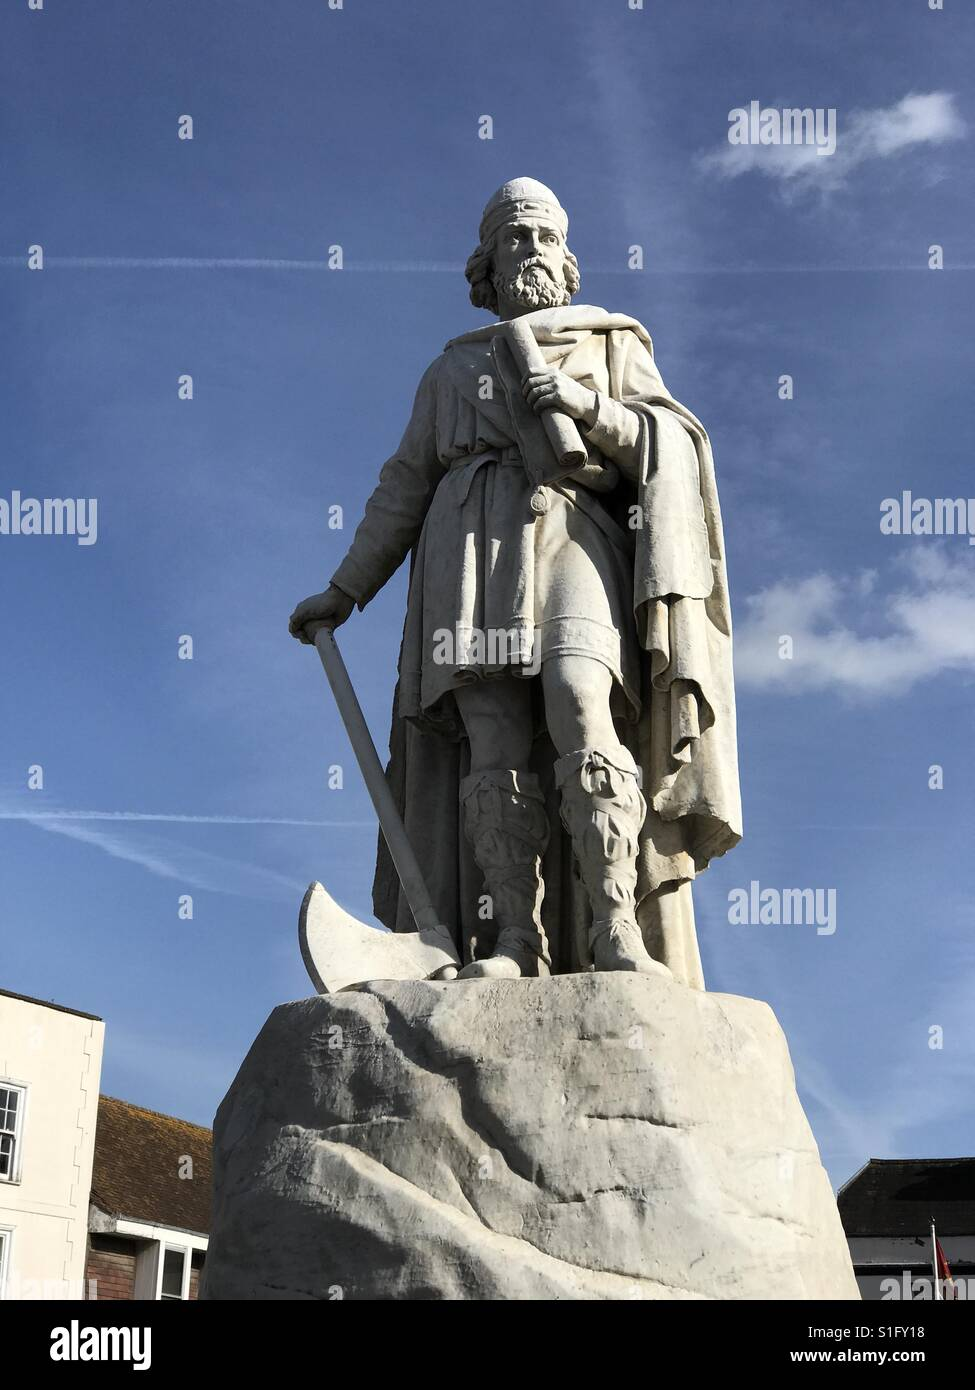 A statue of King Alfred in the market place in Wantage, Oxfordshire, UK. - Stock Image